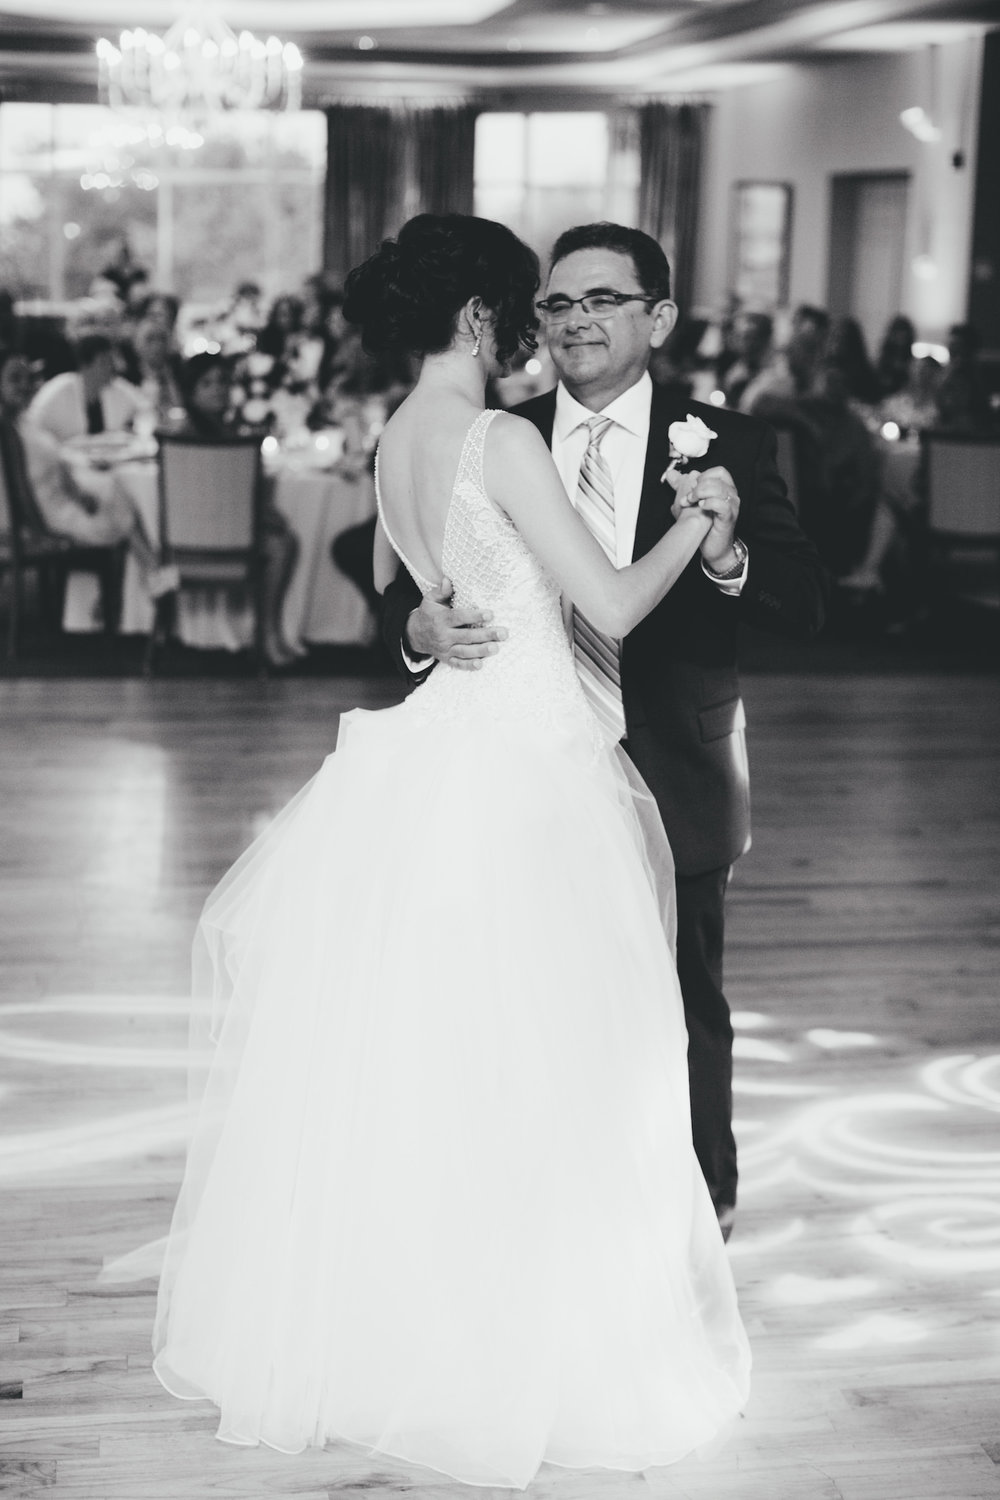 Jared _ Melissa - Reception - Jake _ Katie Photography_156.jpg